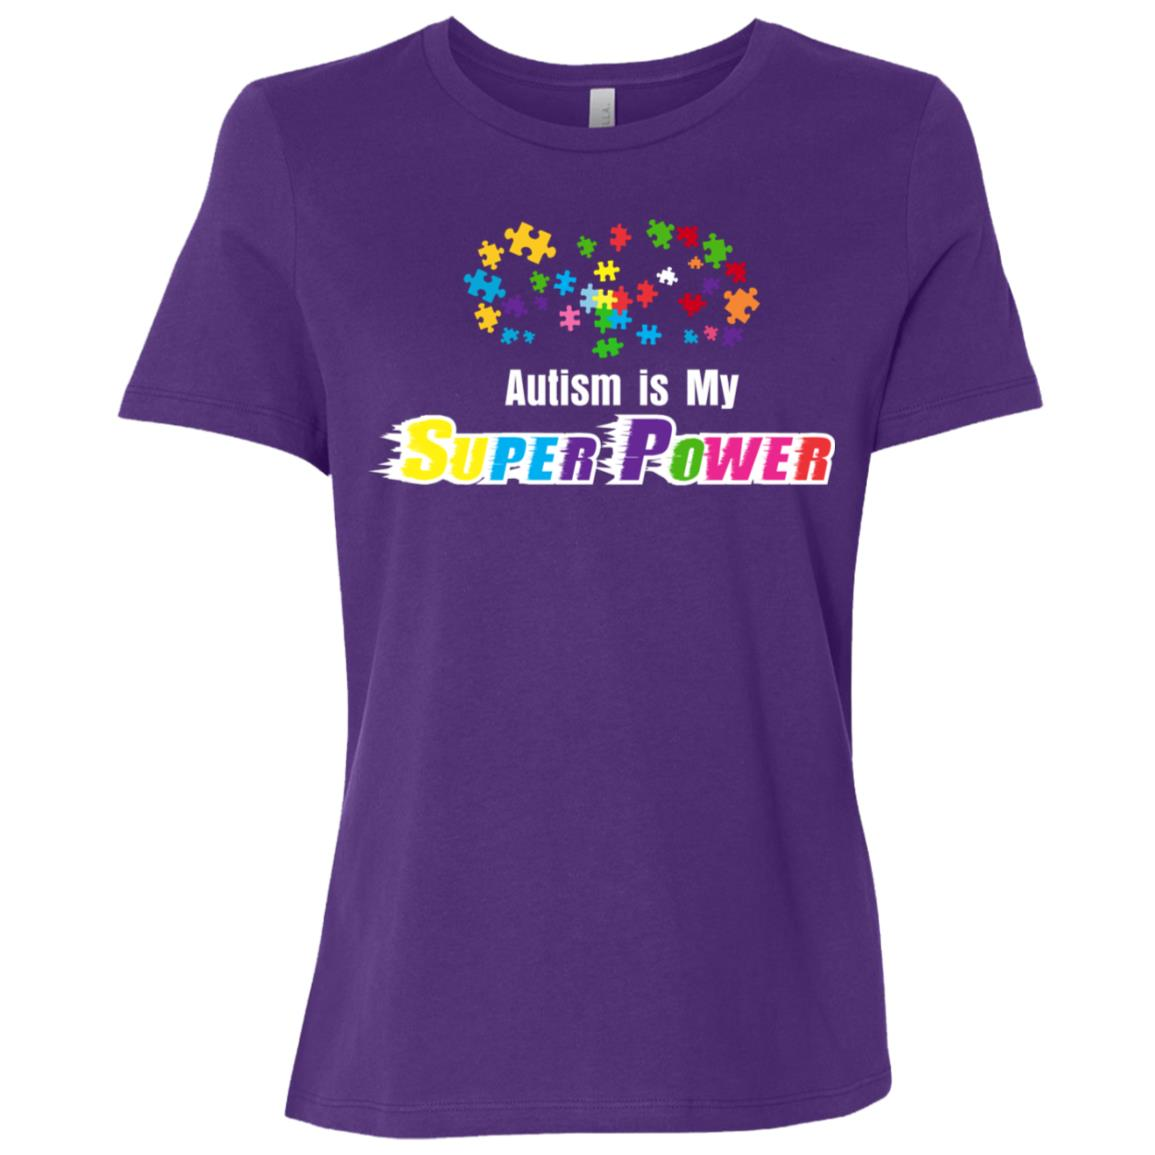 Autism is My Super Power Autism Awareness Women Short Sleeve T-Shirt